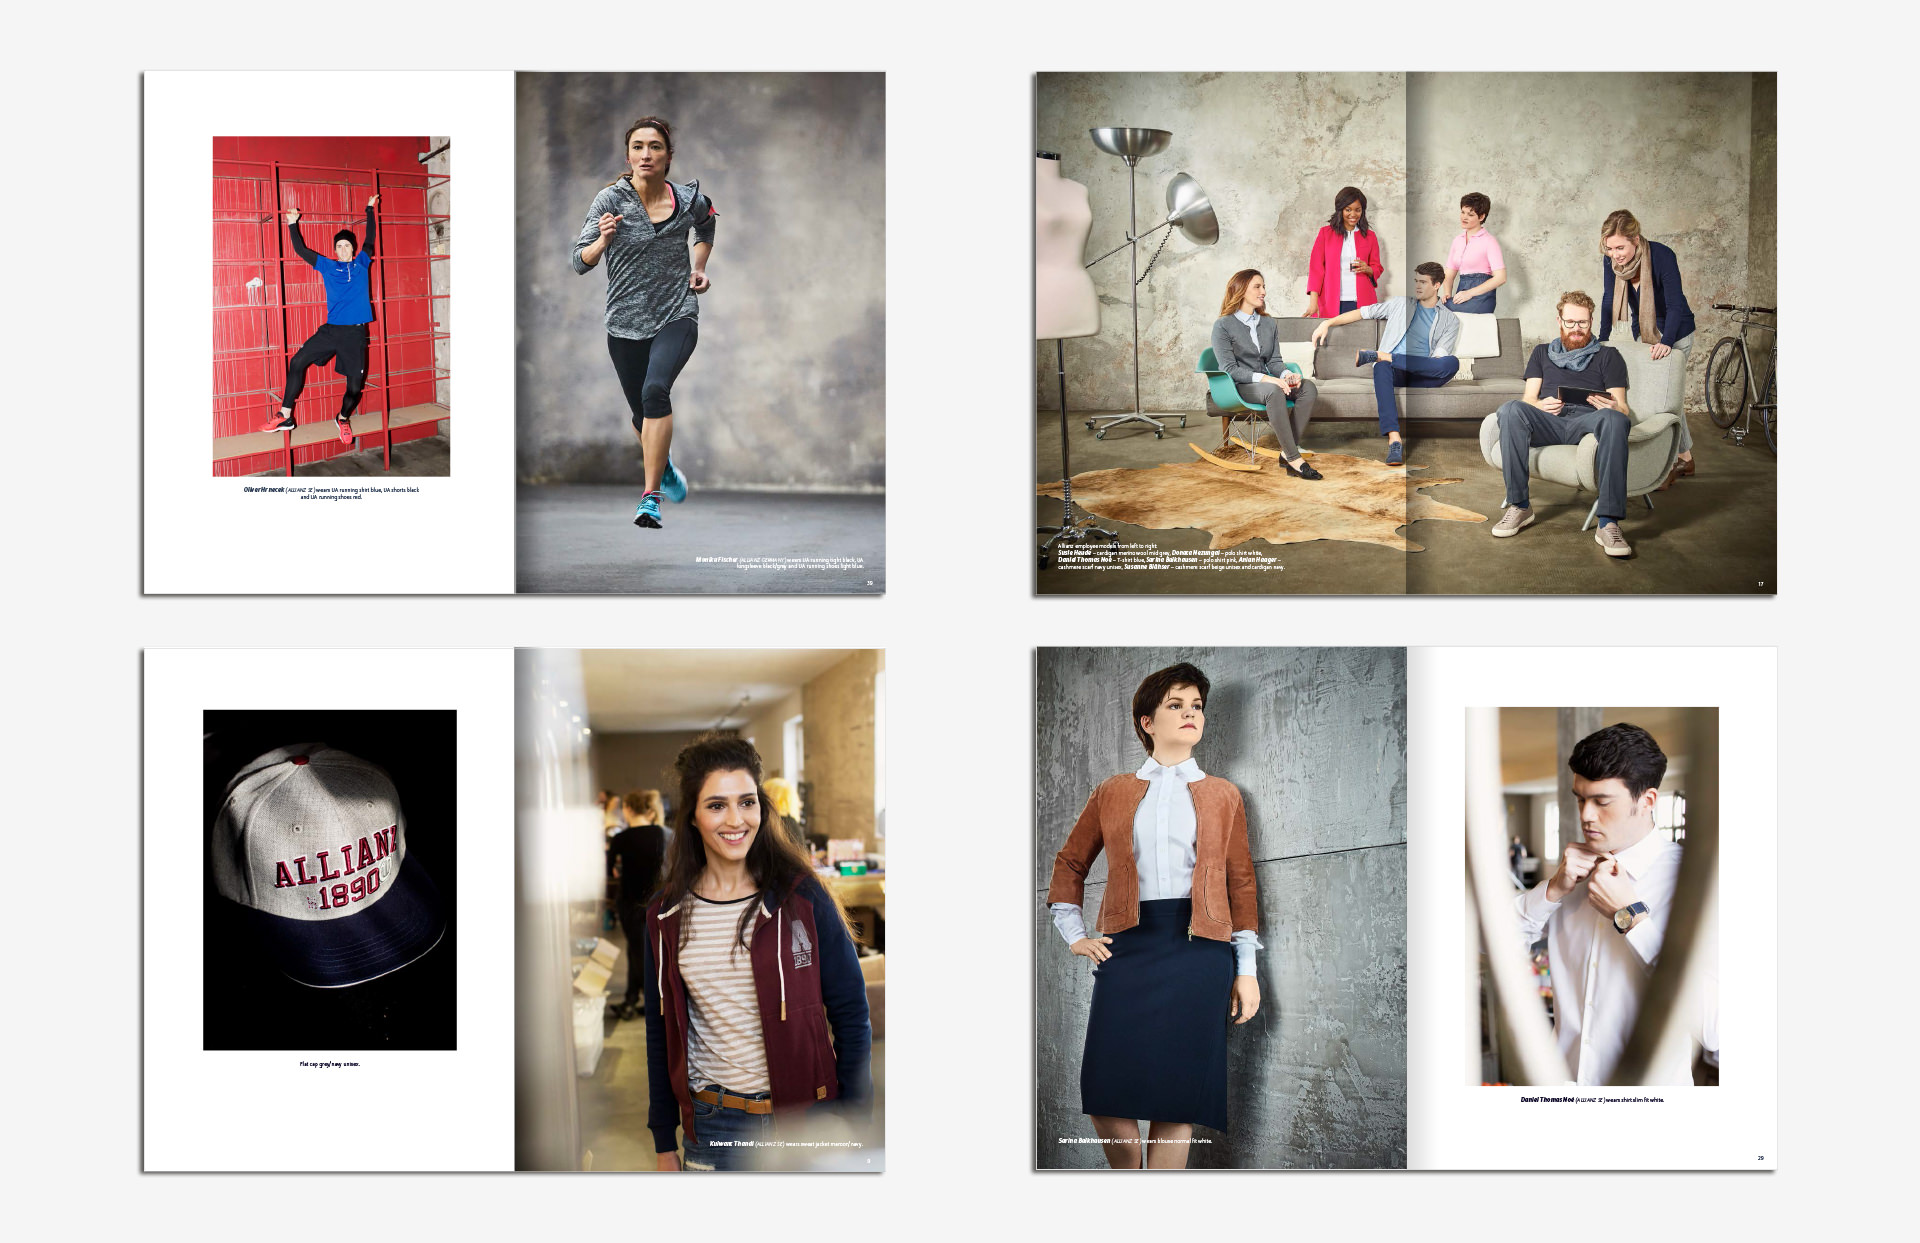 Allianz SE catalog katalog Marketing Strategy design fashion collection shooting running 1890 blue world business layout print LAKE5 Consulting GmbH Hannover Germany